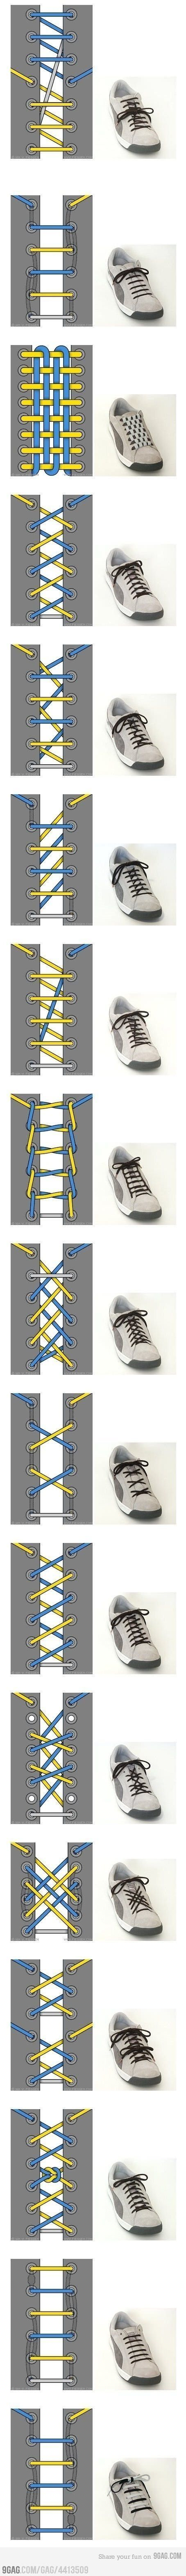 17 Ways To Tie Your Shoelace